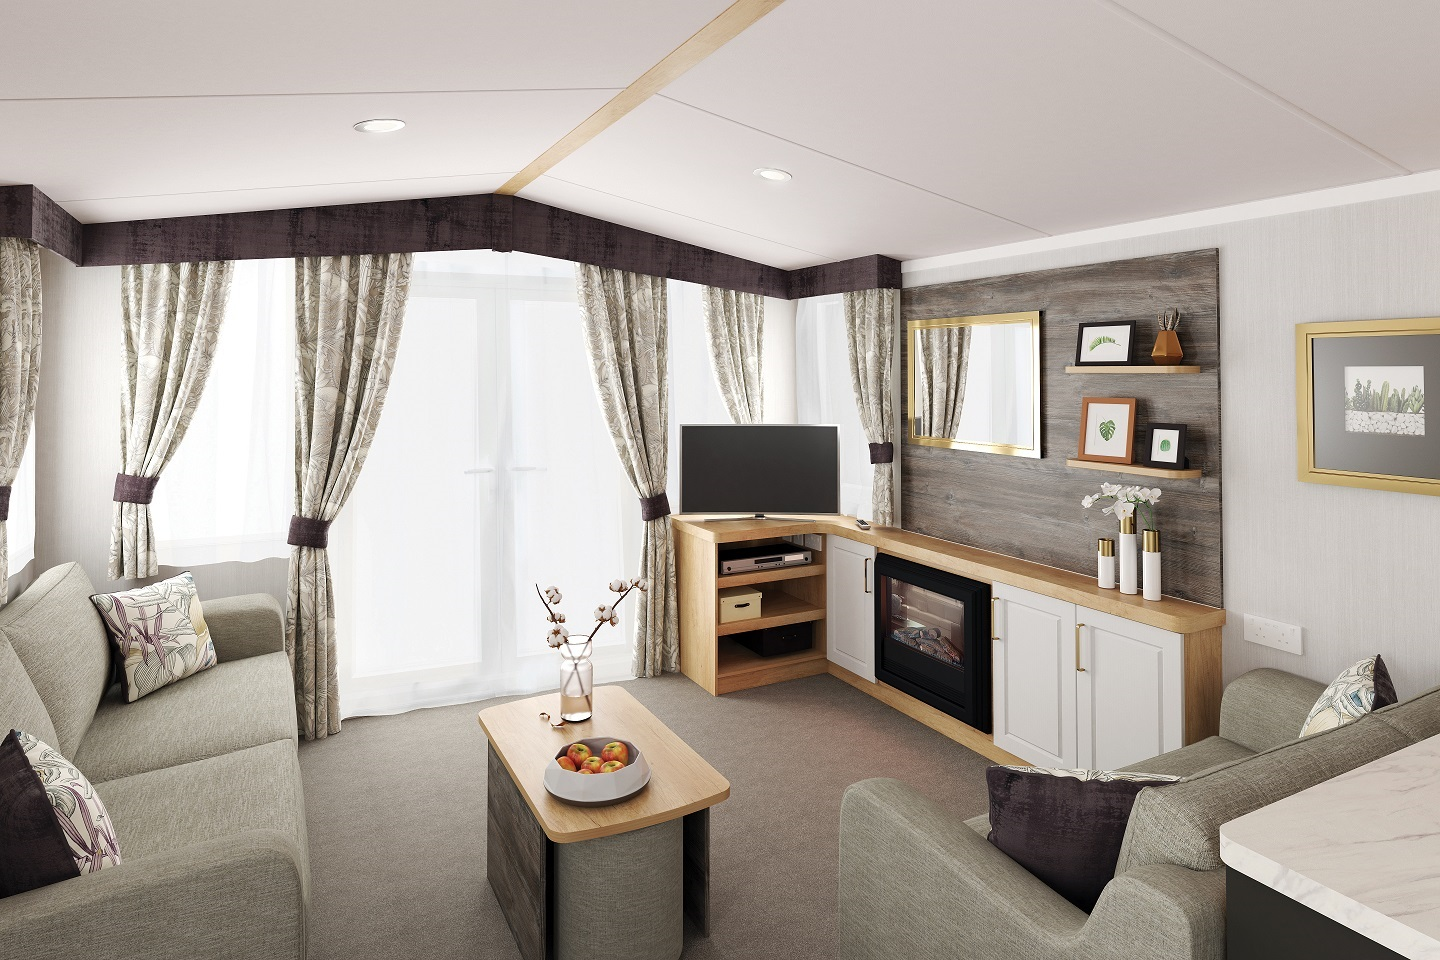 Swift Bordeaux: New Static Caravans and Holiday Homes for Sale, Langley Moor, Durham Large Image 1